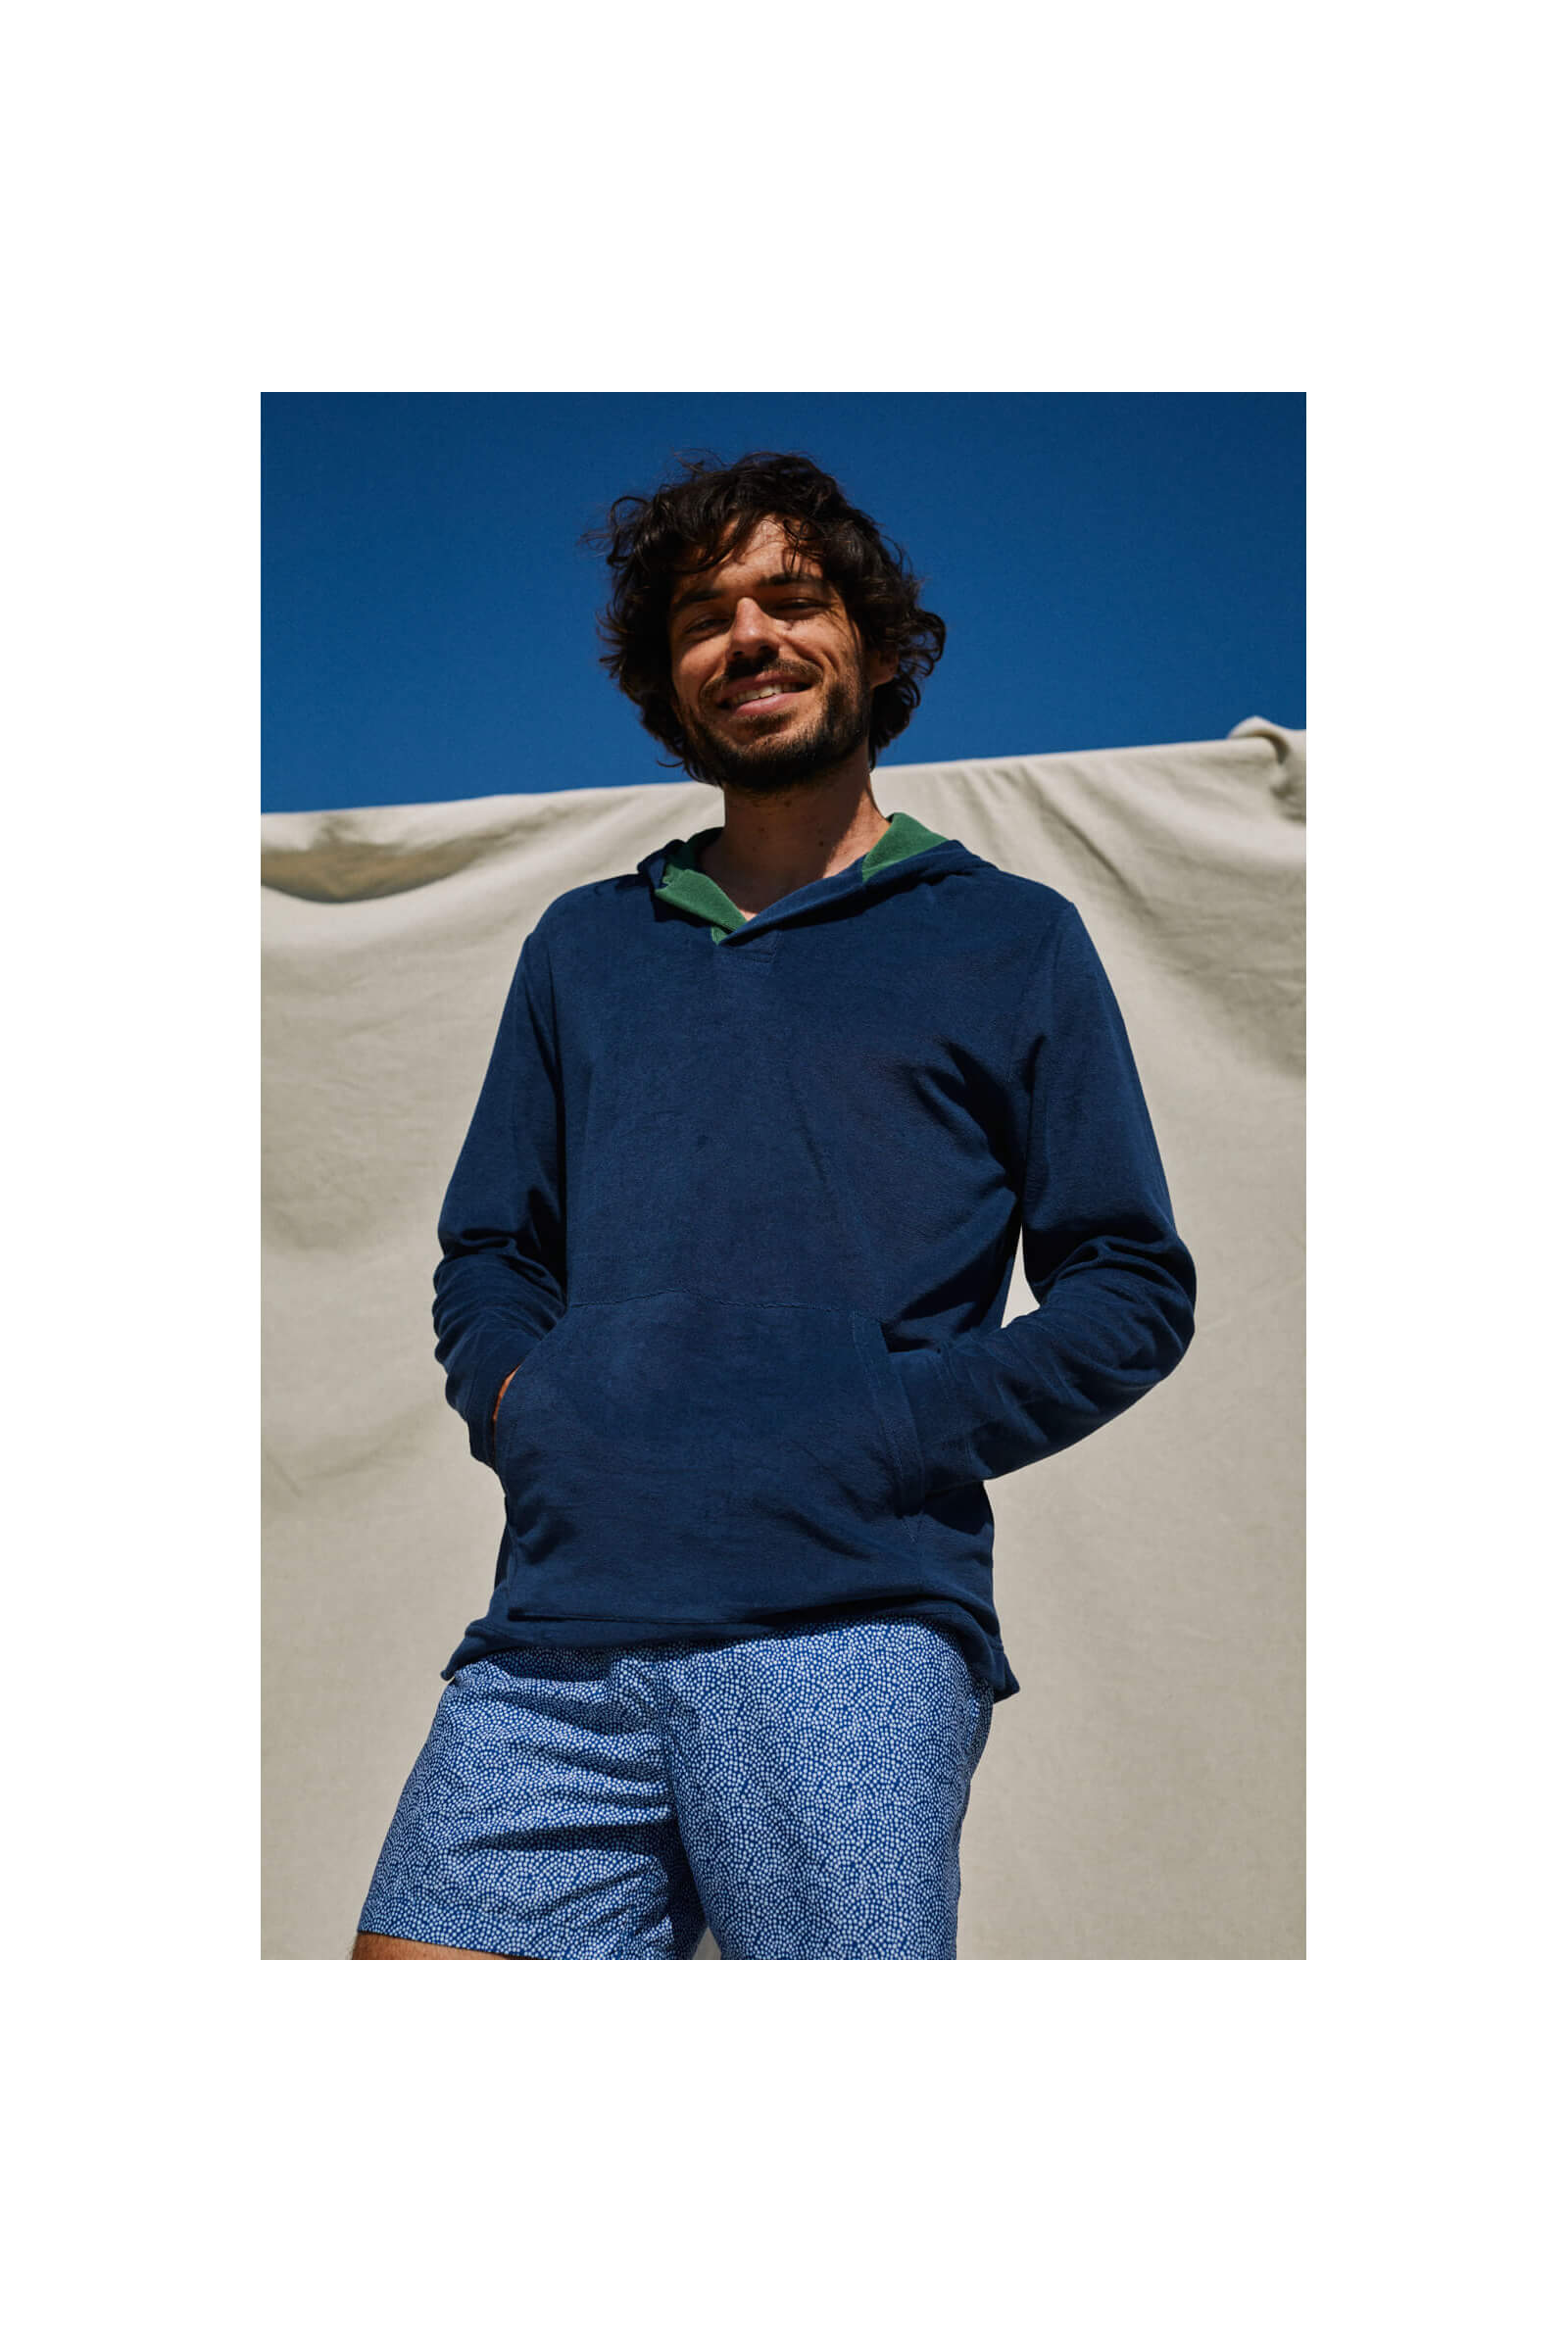 man wearing a navy terry cloth sweat